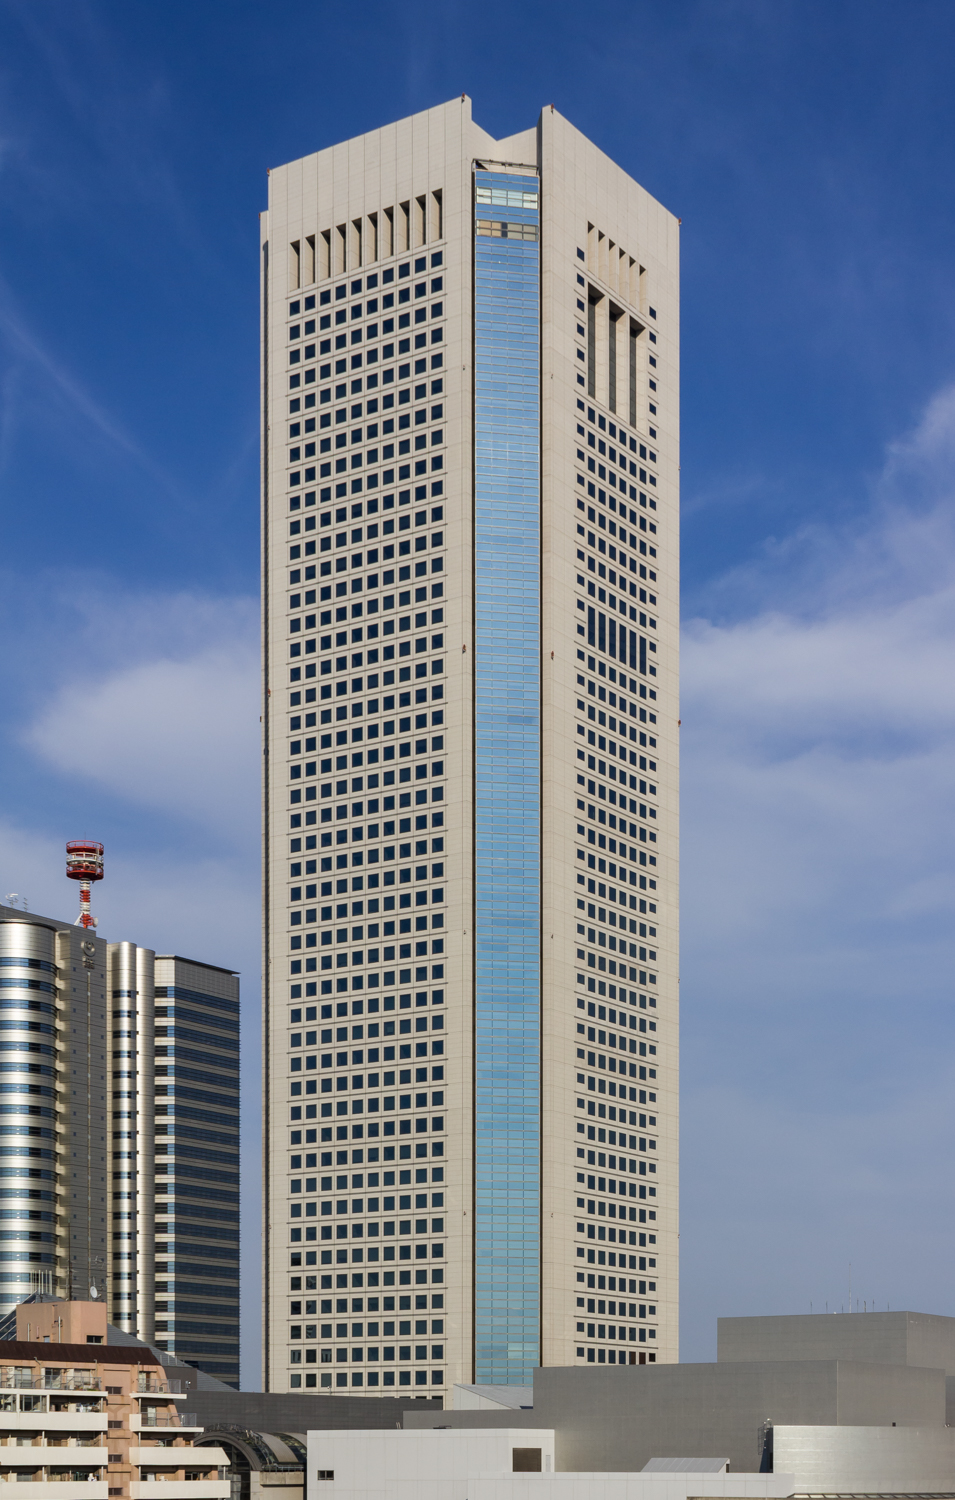 https://upload.wikimedia.org/wikipedia/commons/c/c5/Tokyo_Opera_City_Tower.JPG